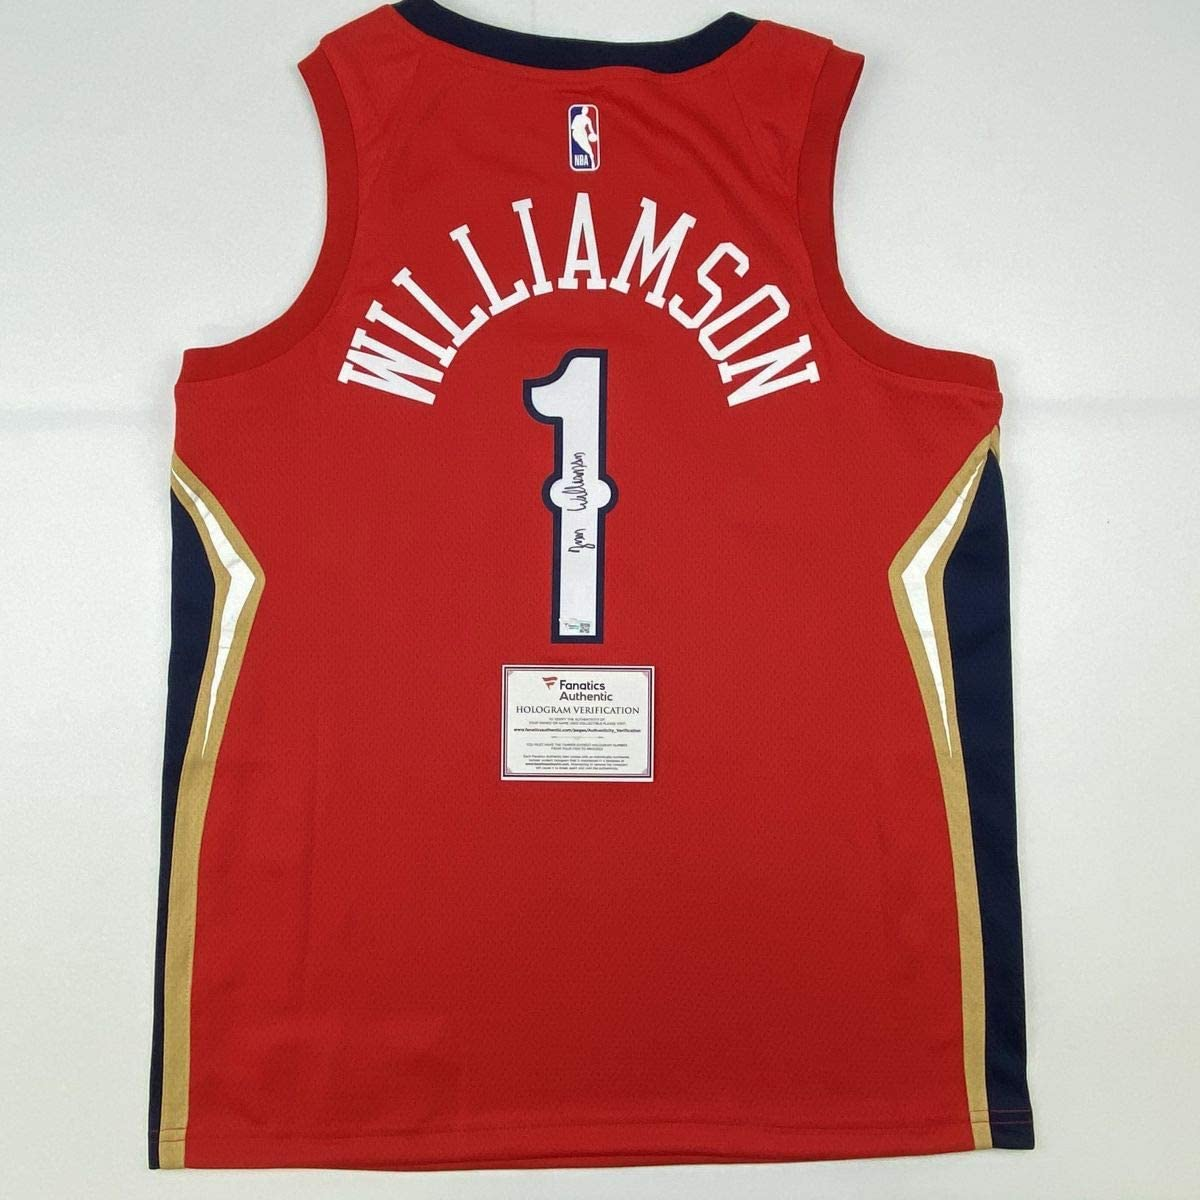 Autographed/Signed Zion Williamson New Orleans Pelicans Red Swingman Jordan Basketball Jersey Fanatics COA